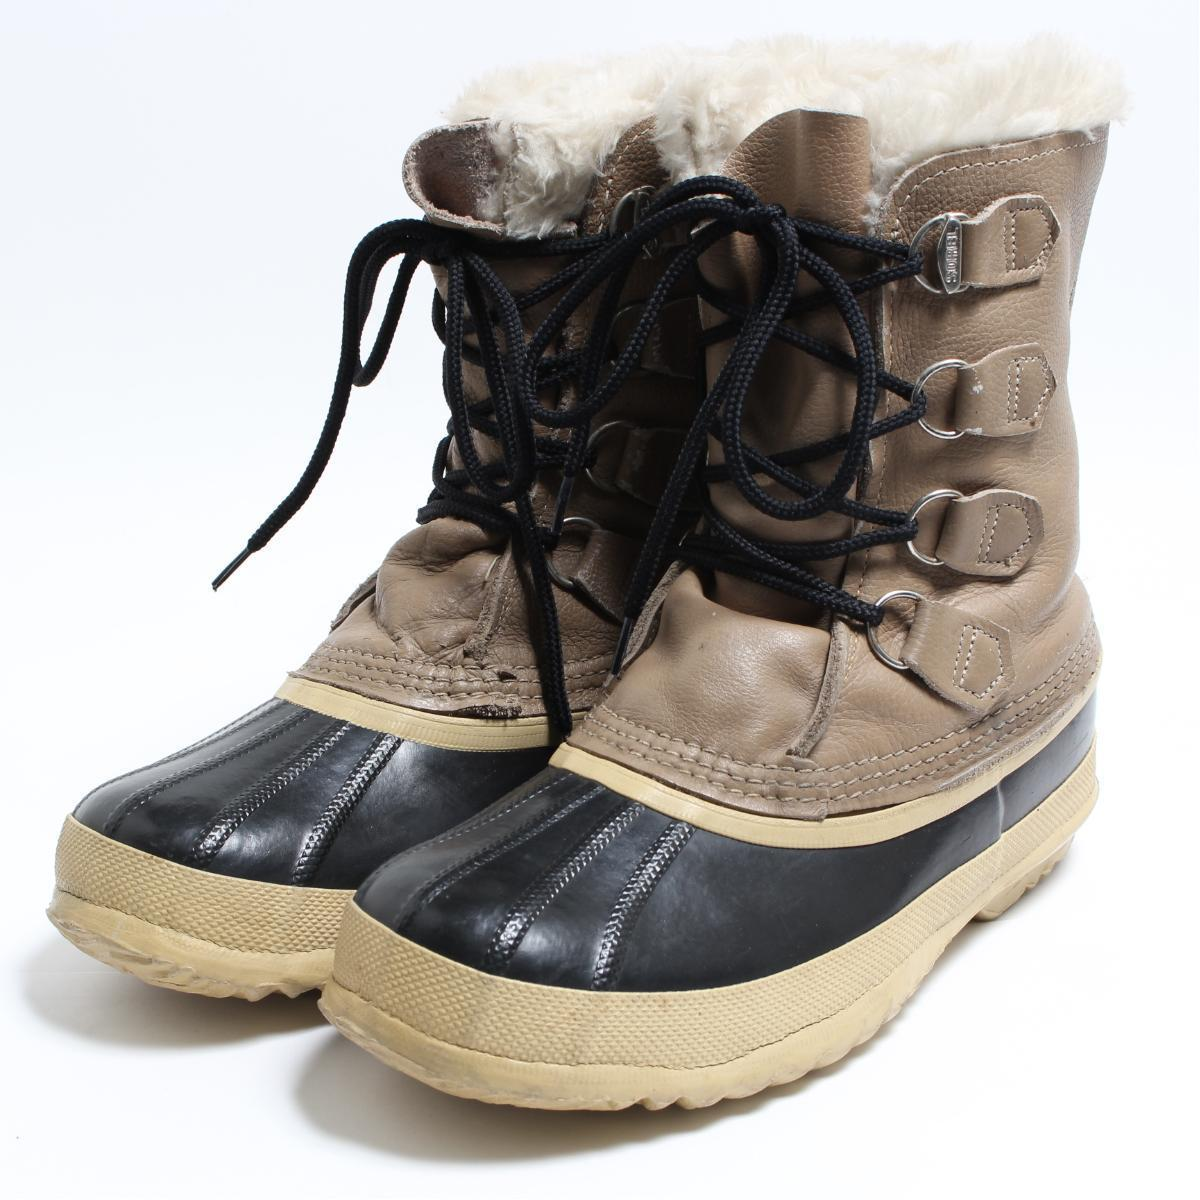 8 Lady's 25 0cm /boo0049 for Sorrel SOREL winter made in boots Canada